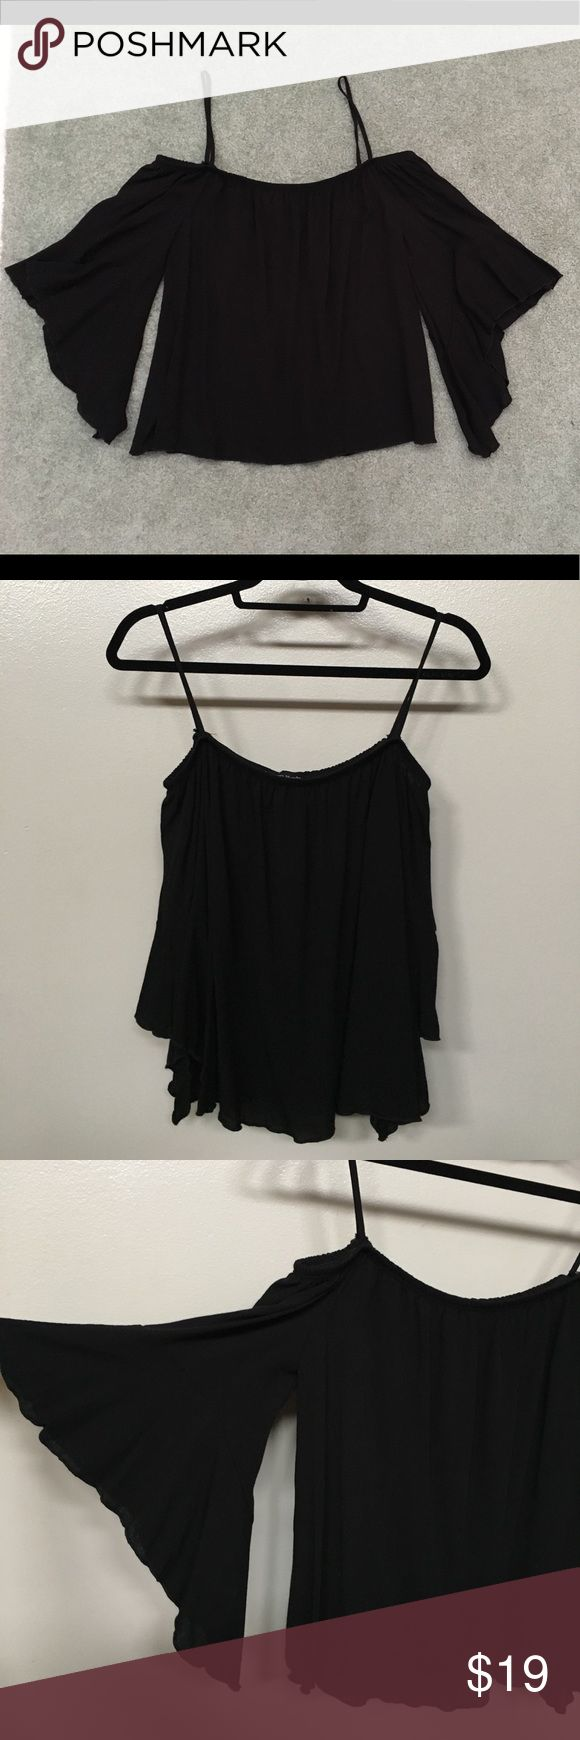 "NEW Black Batwing Top Brand new! Black off shoulder back wing sleeve shirt. So cute. Length strap to hem 23"" Tops"